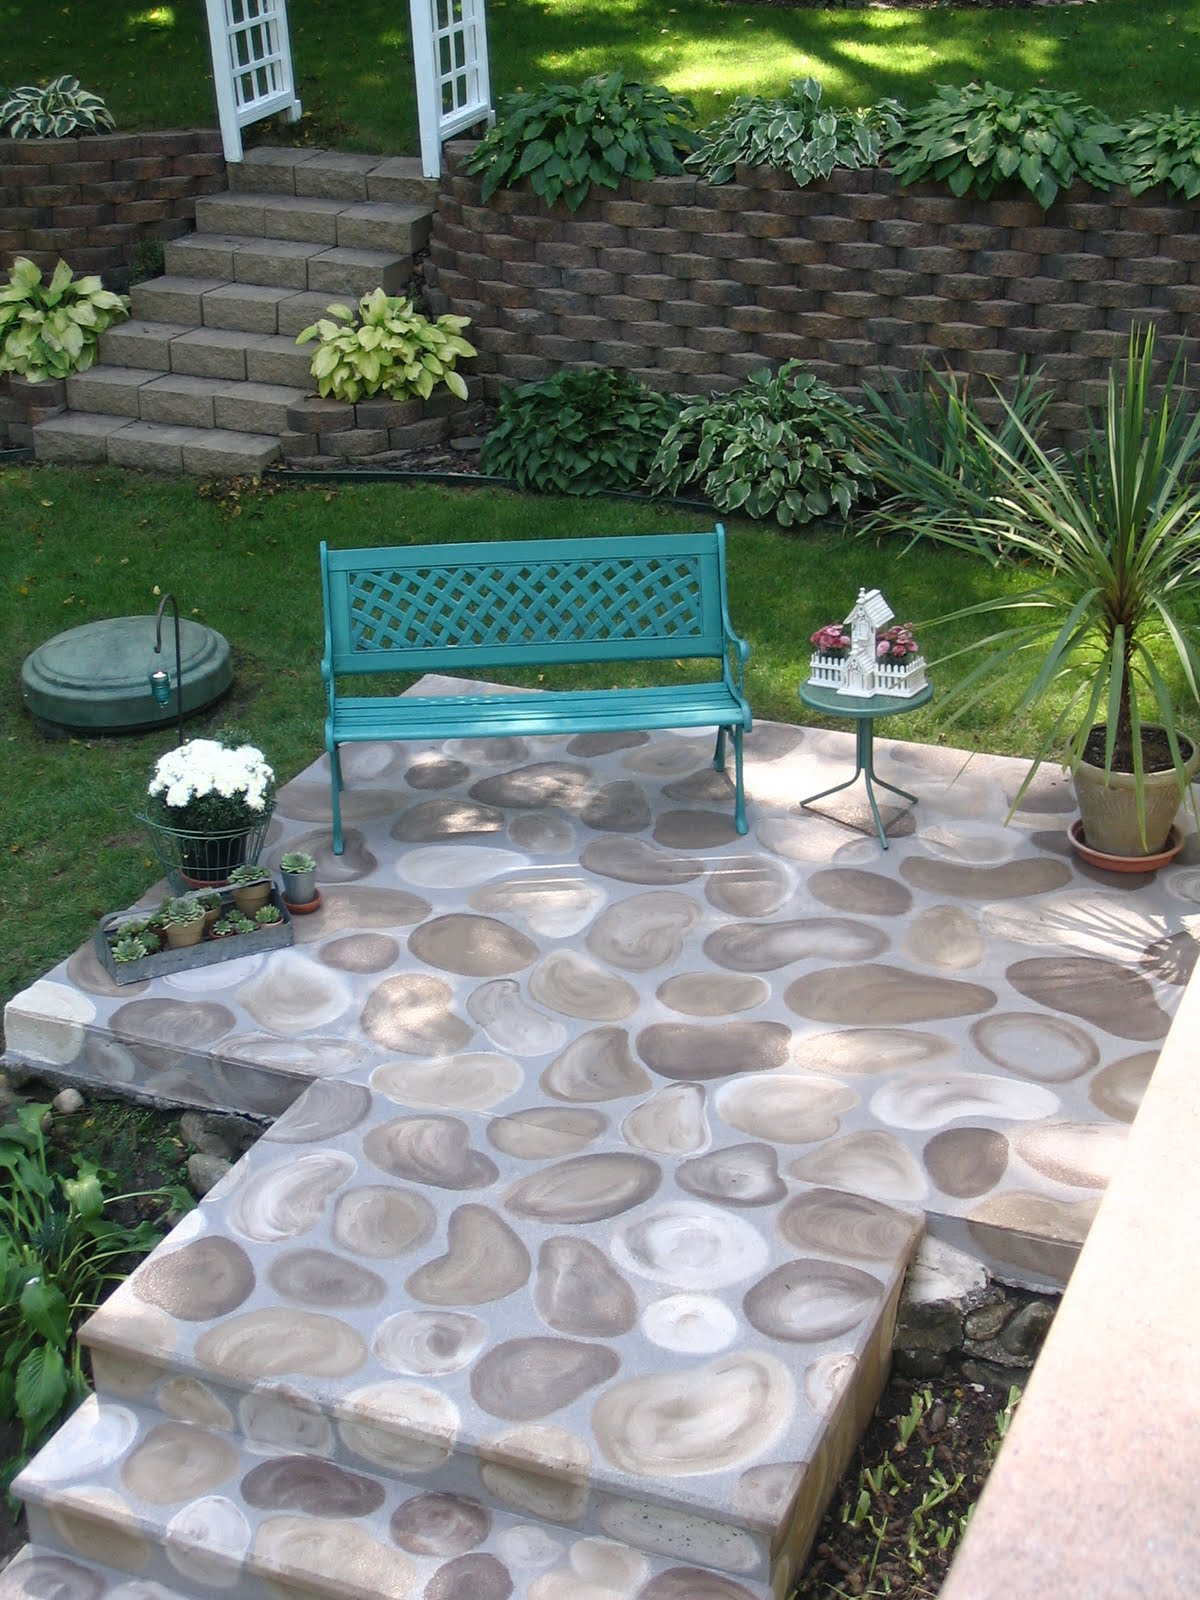 My Shabby Chateau: Turning and ugly concrete slab into a ... on Concrete Slab Patio Ideas id=74999